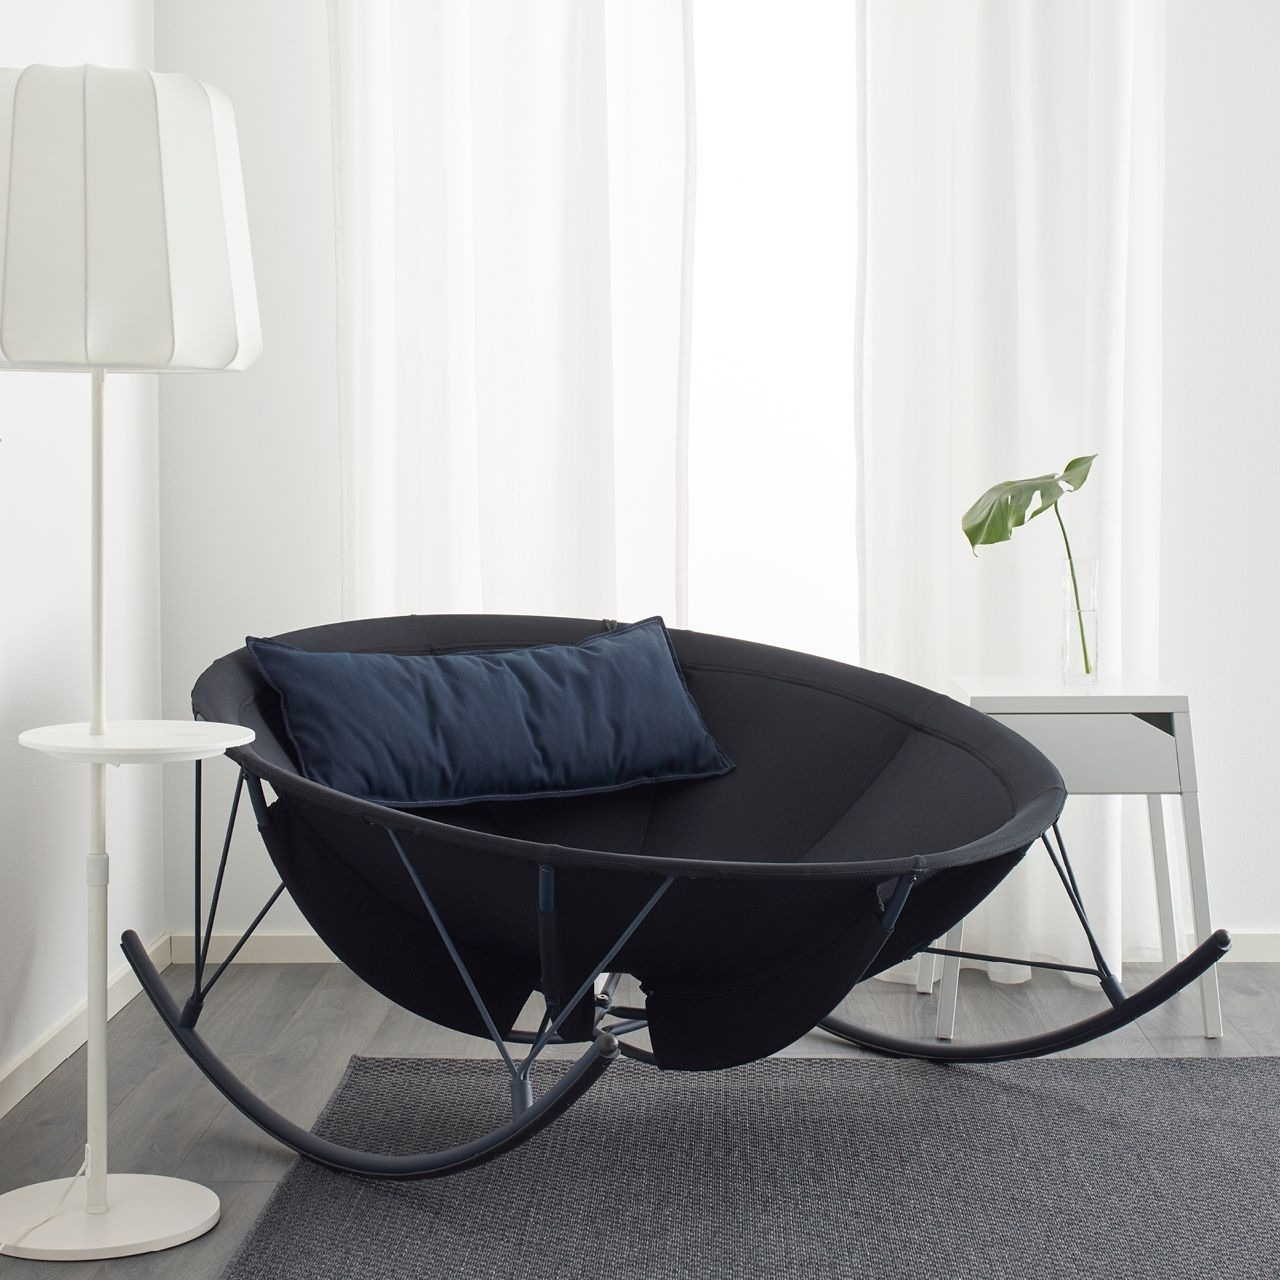 Arizona Pertaining To Most Popular Rocking Chairs At Ikea (Gallery 12 of 20)